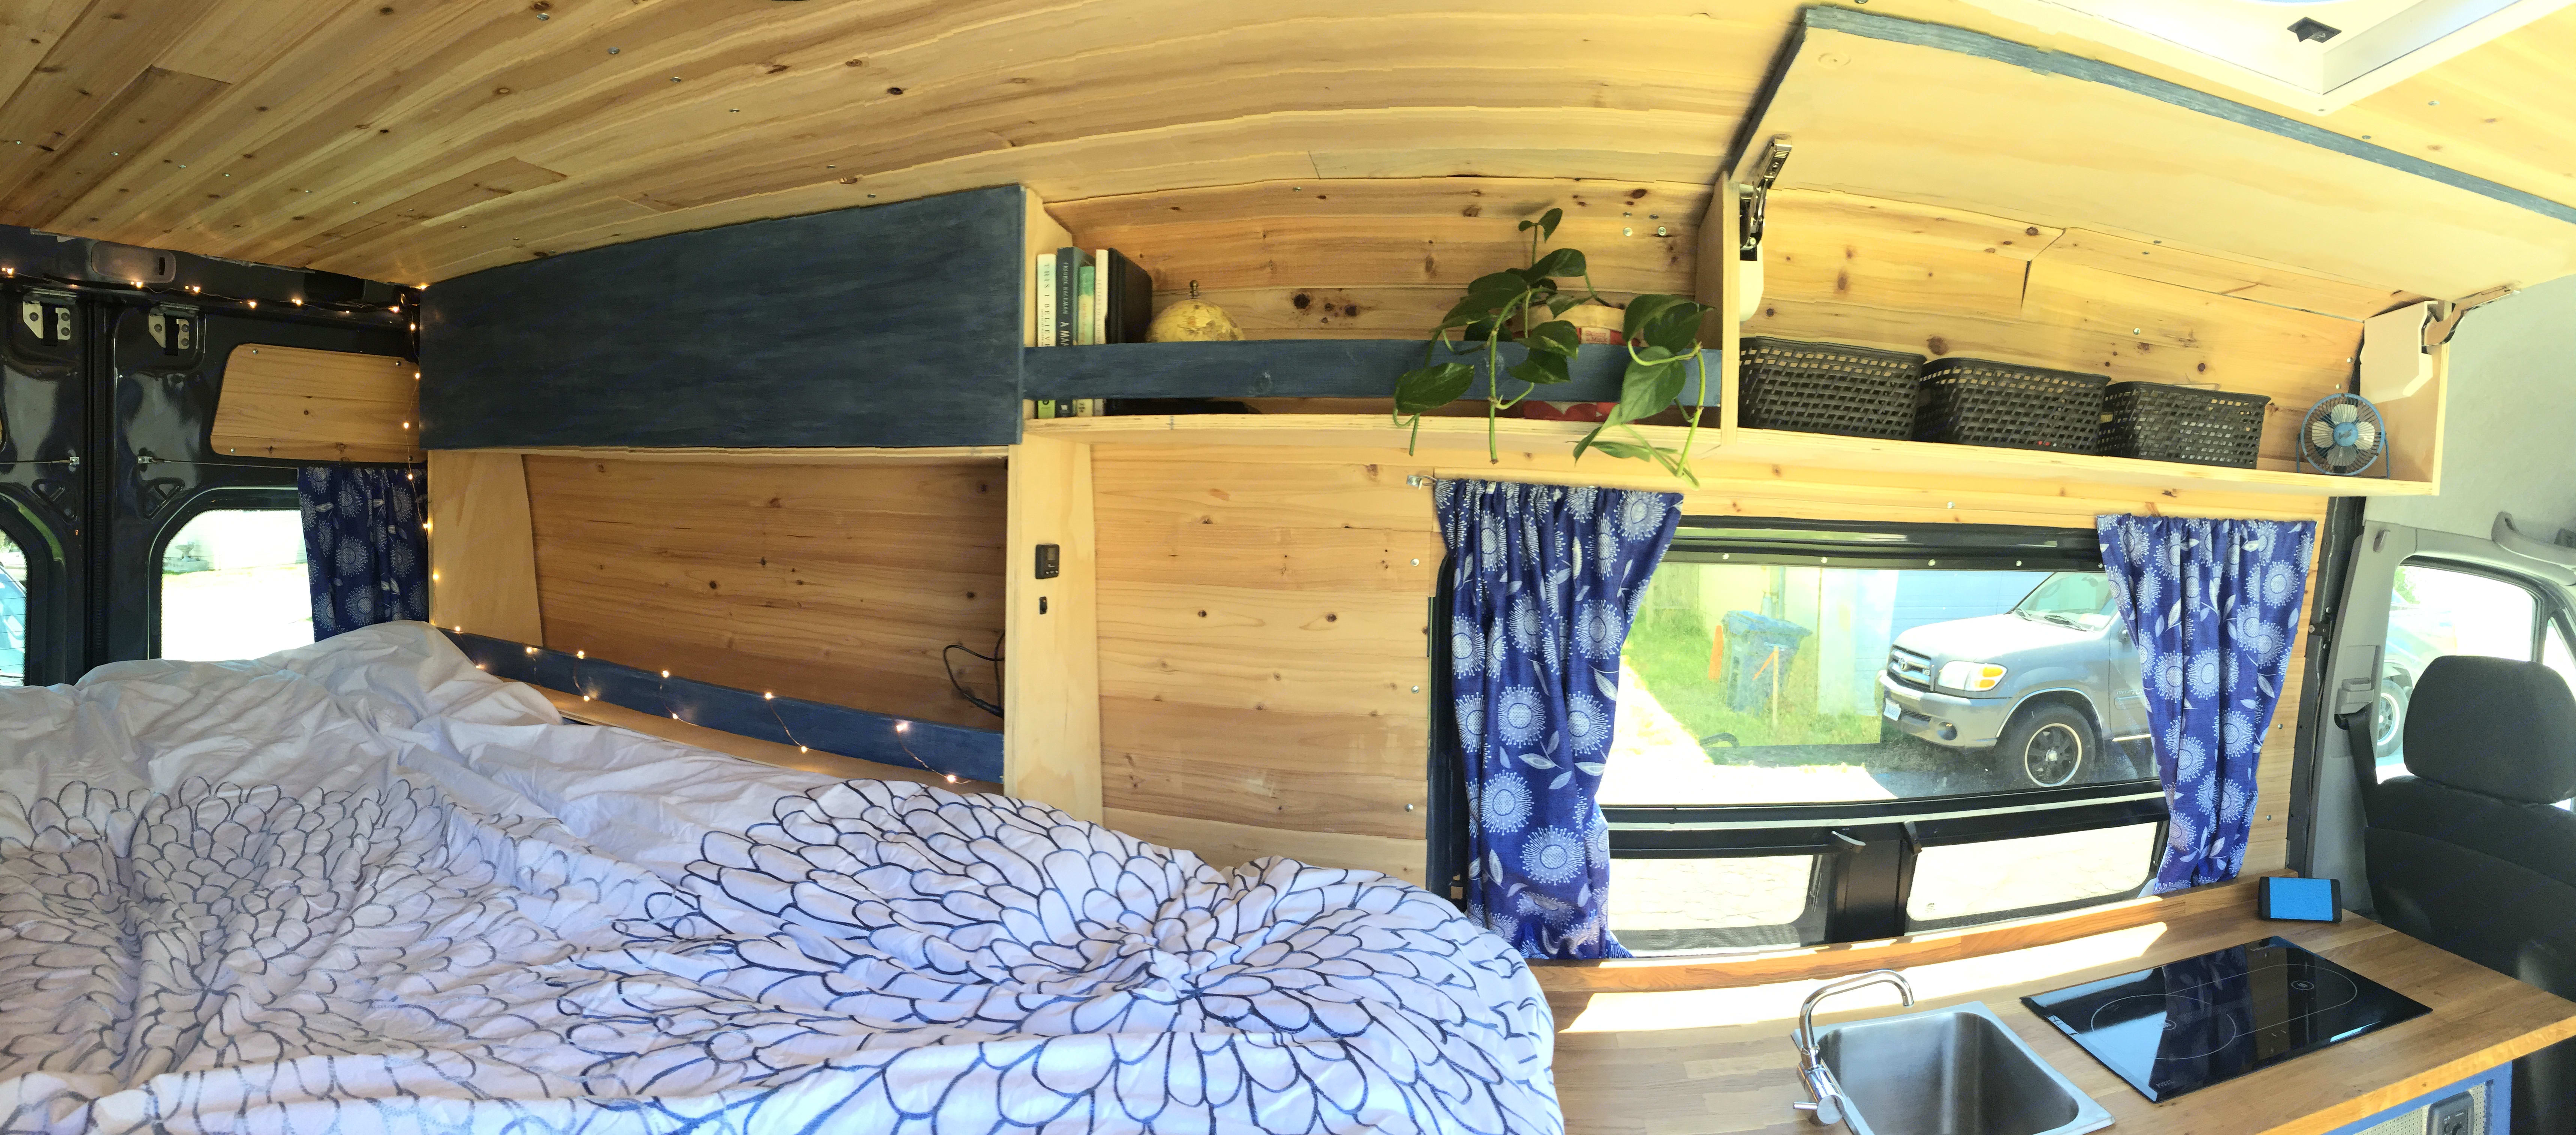 There is lots of storage room with 8 drawers in the kitchen area and a garage under the bed for storage of camping gear/bikes/extras. MB Sprinter 2016